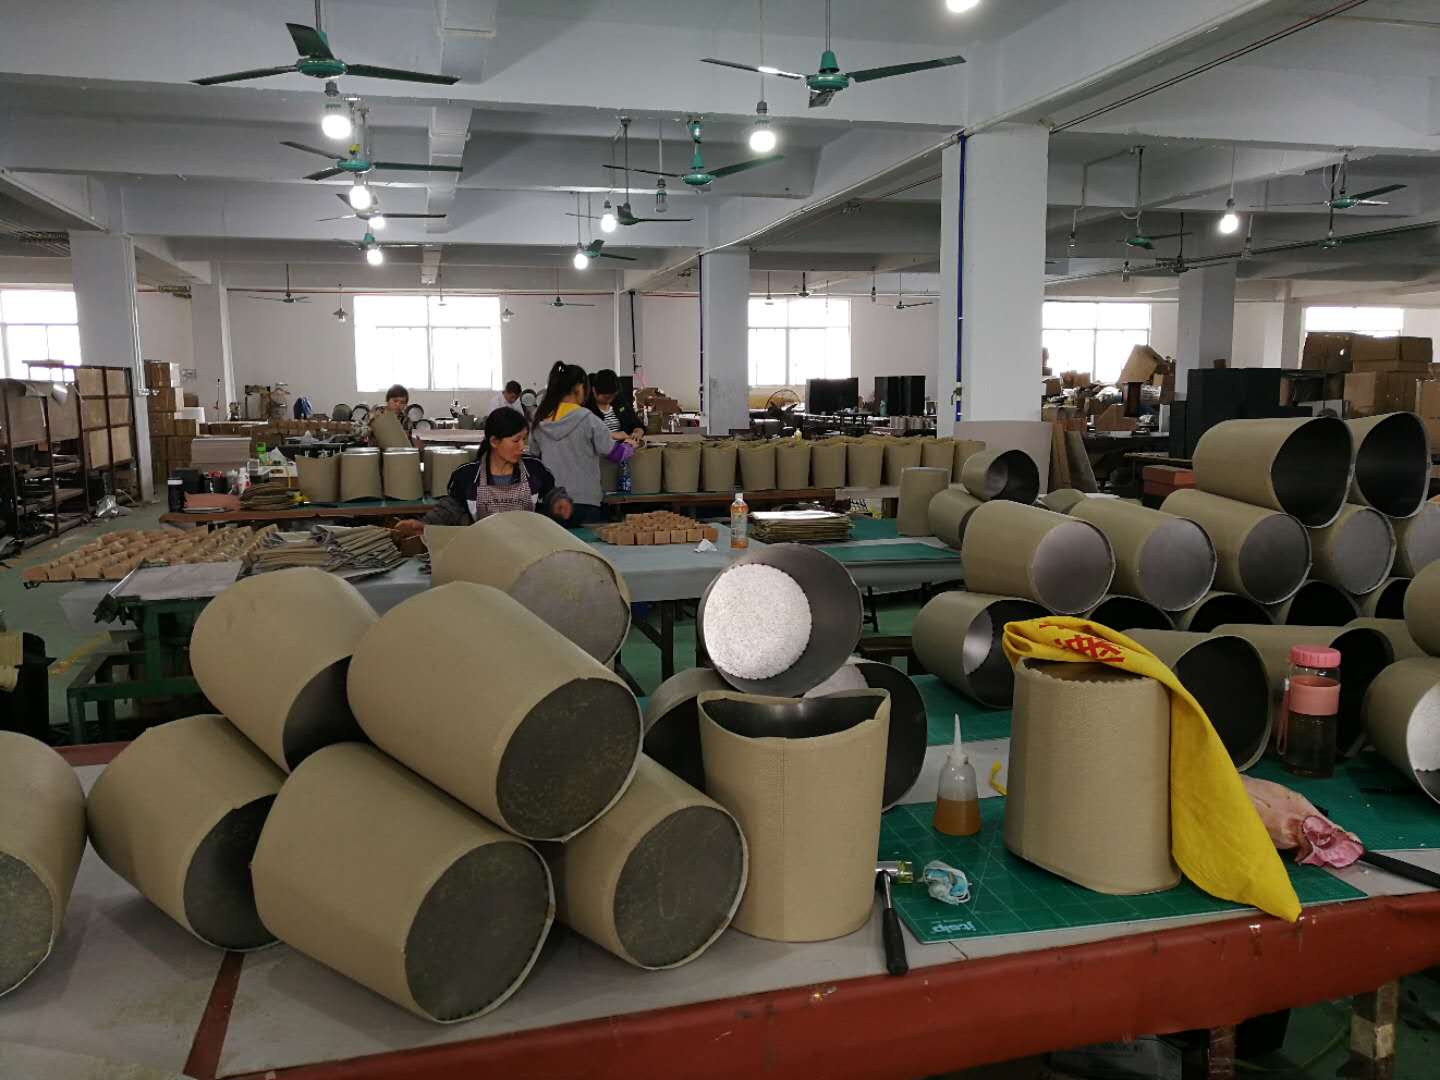 Fenghe-Custom Rope Barrier Manufacturer, Queue Line Ropes | Fenghe-4